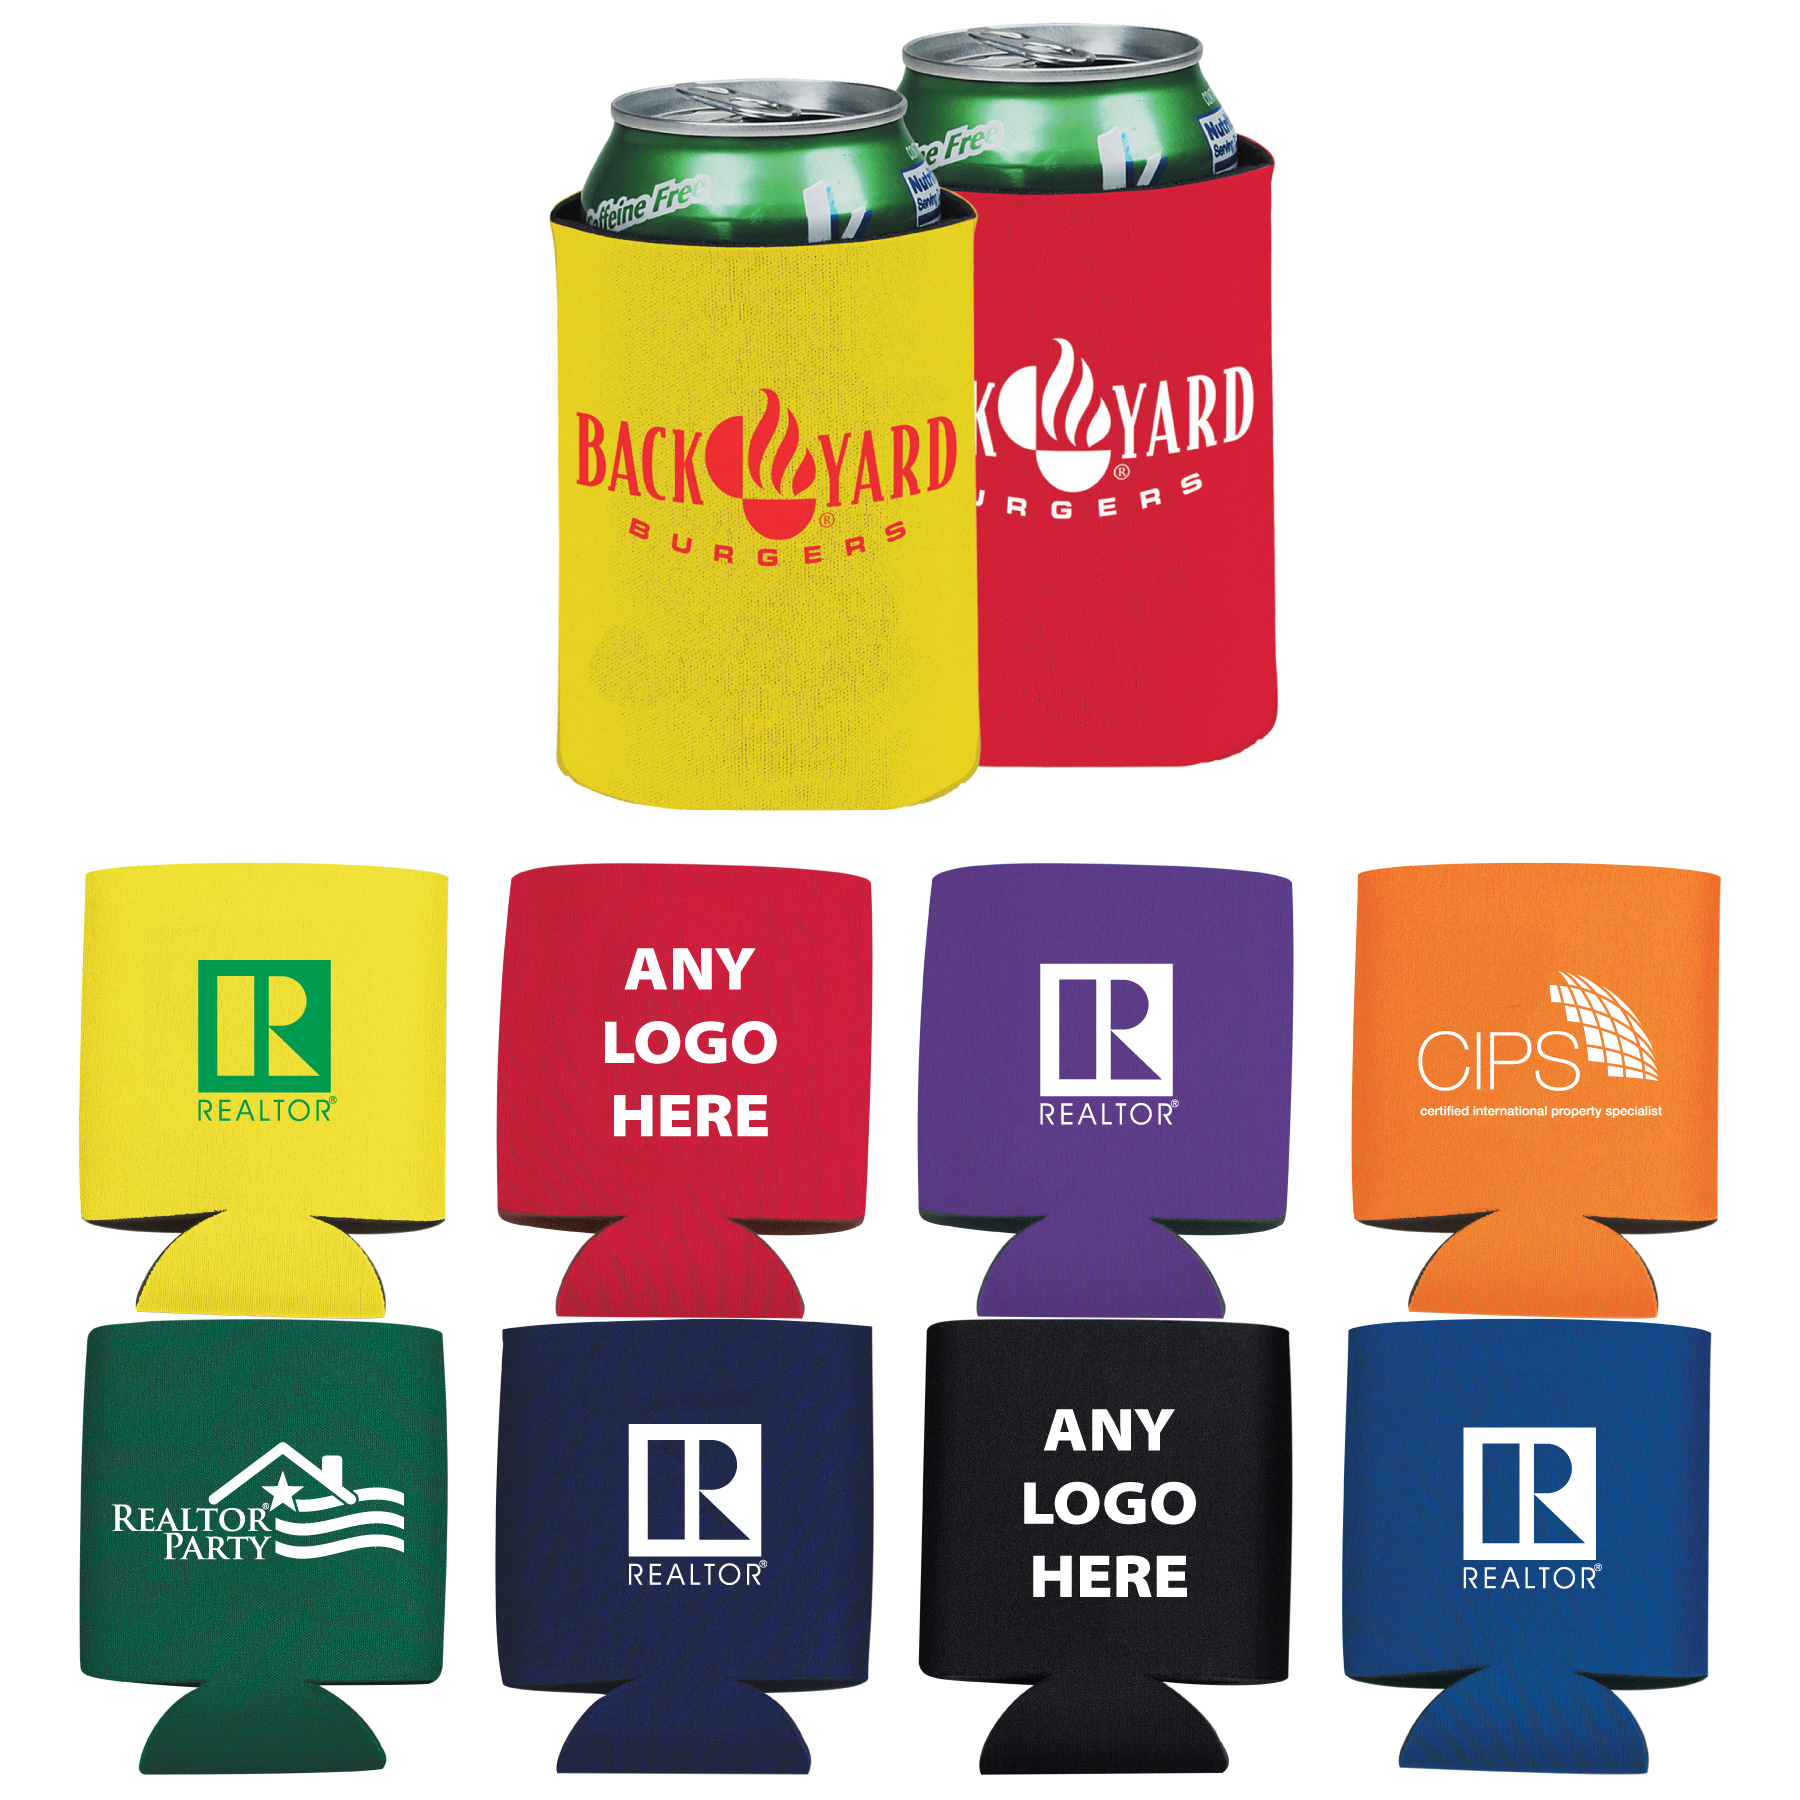 Collapsible Can Insulator (Special Order) Cups,Mugs,Tumblers,Drinks,Drinkwares,glasses,glass,koozies,coozies,coosies,huggies,insulators,foam,cans